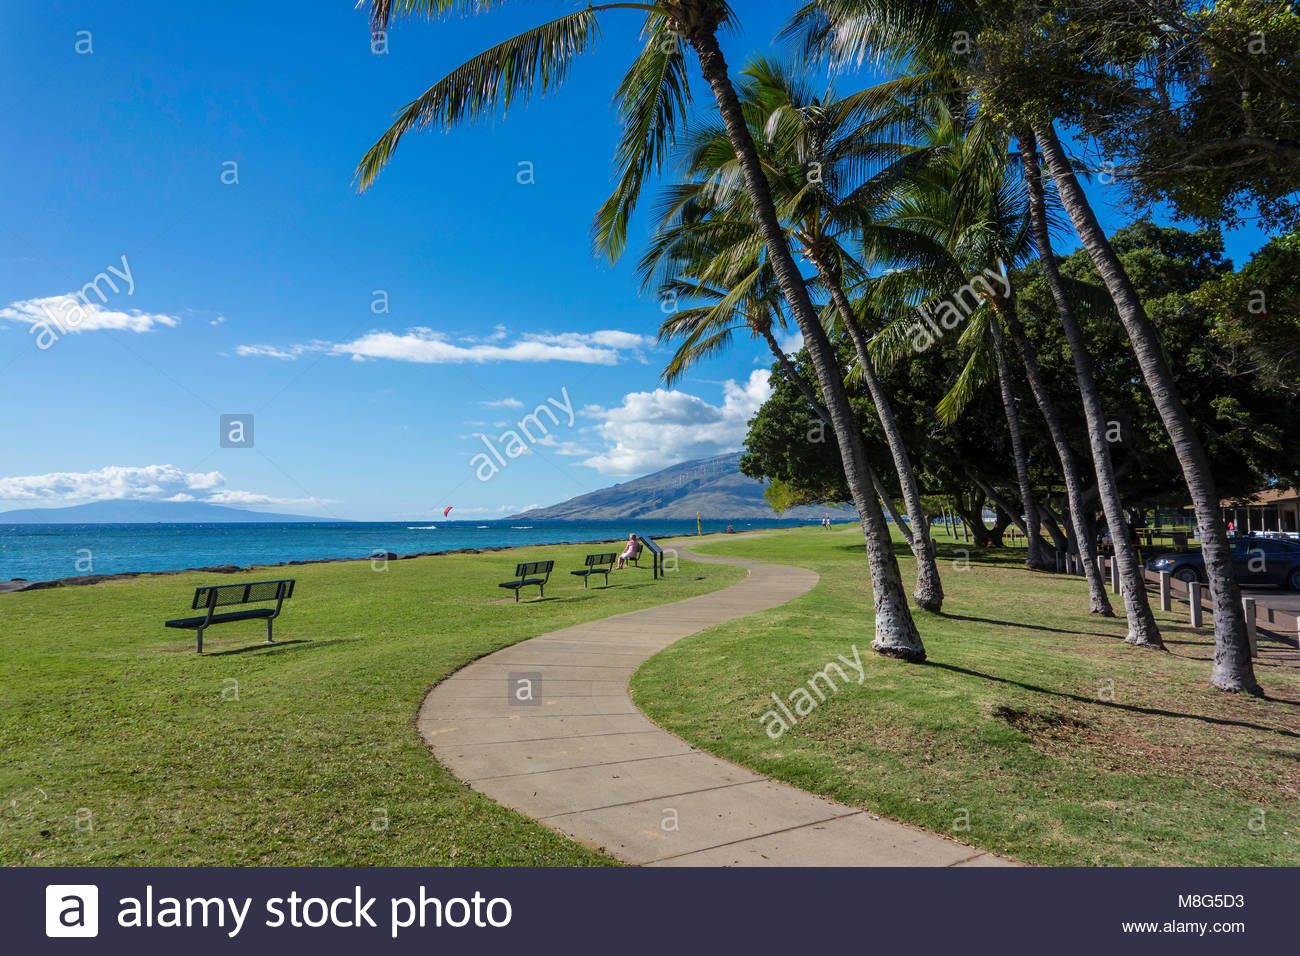 Palm trees line the seafront promenade in Kalama Park in Kihei island of Maui in the state of Hawaii USA - Stock Image